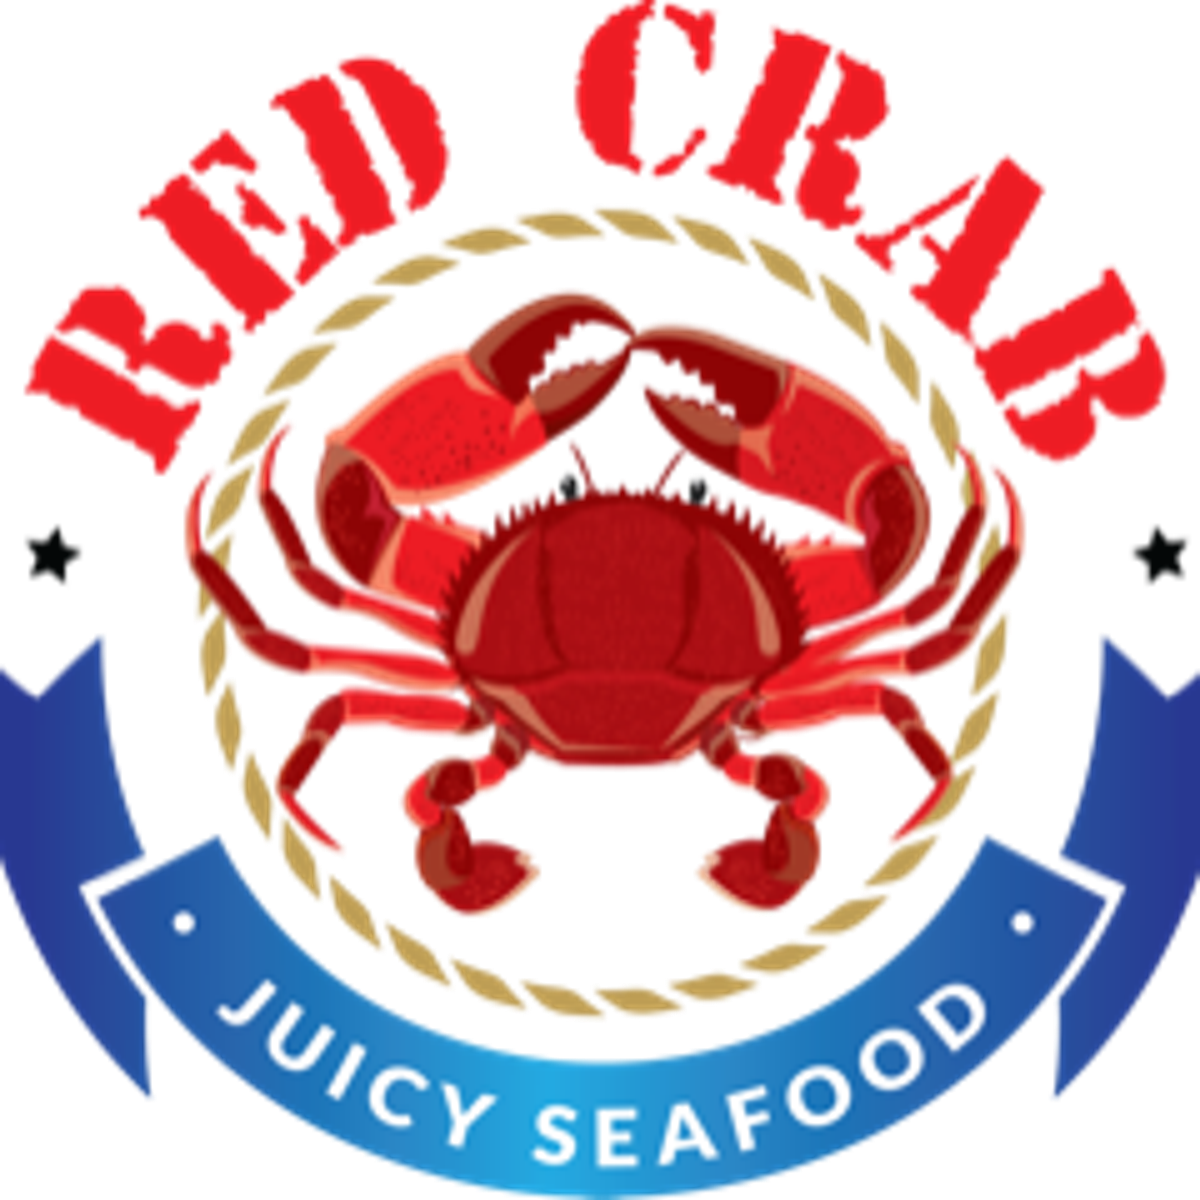 Red Crab Juicy Seafood